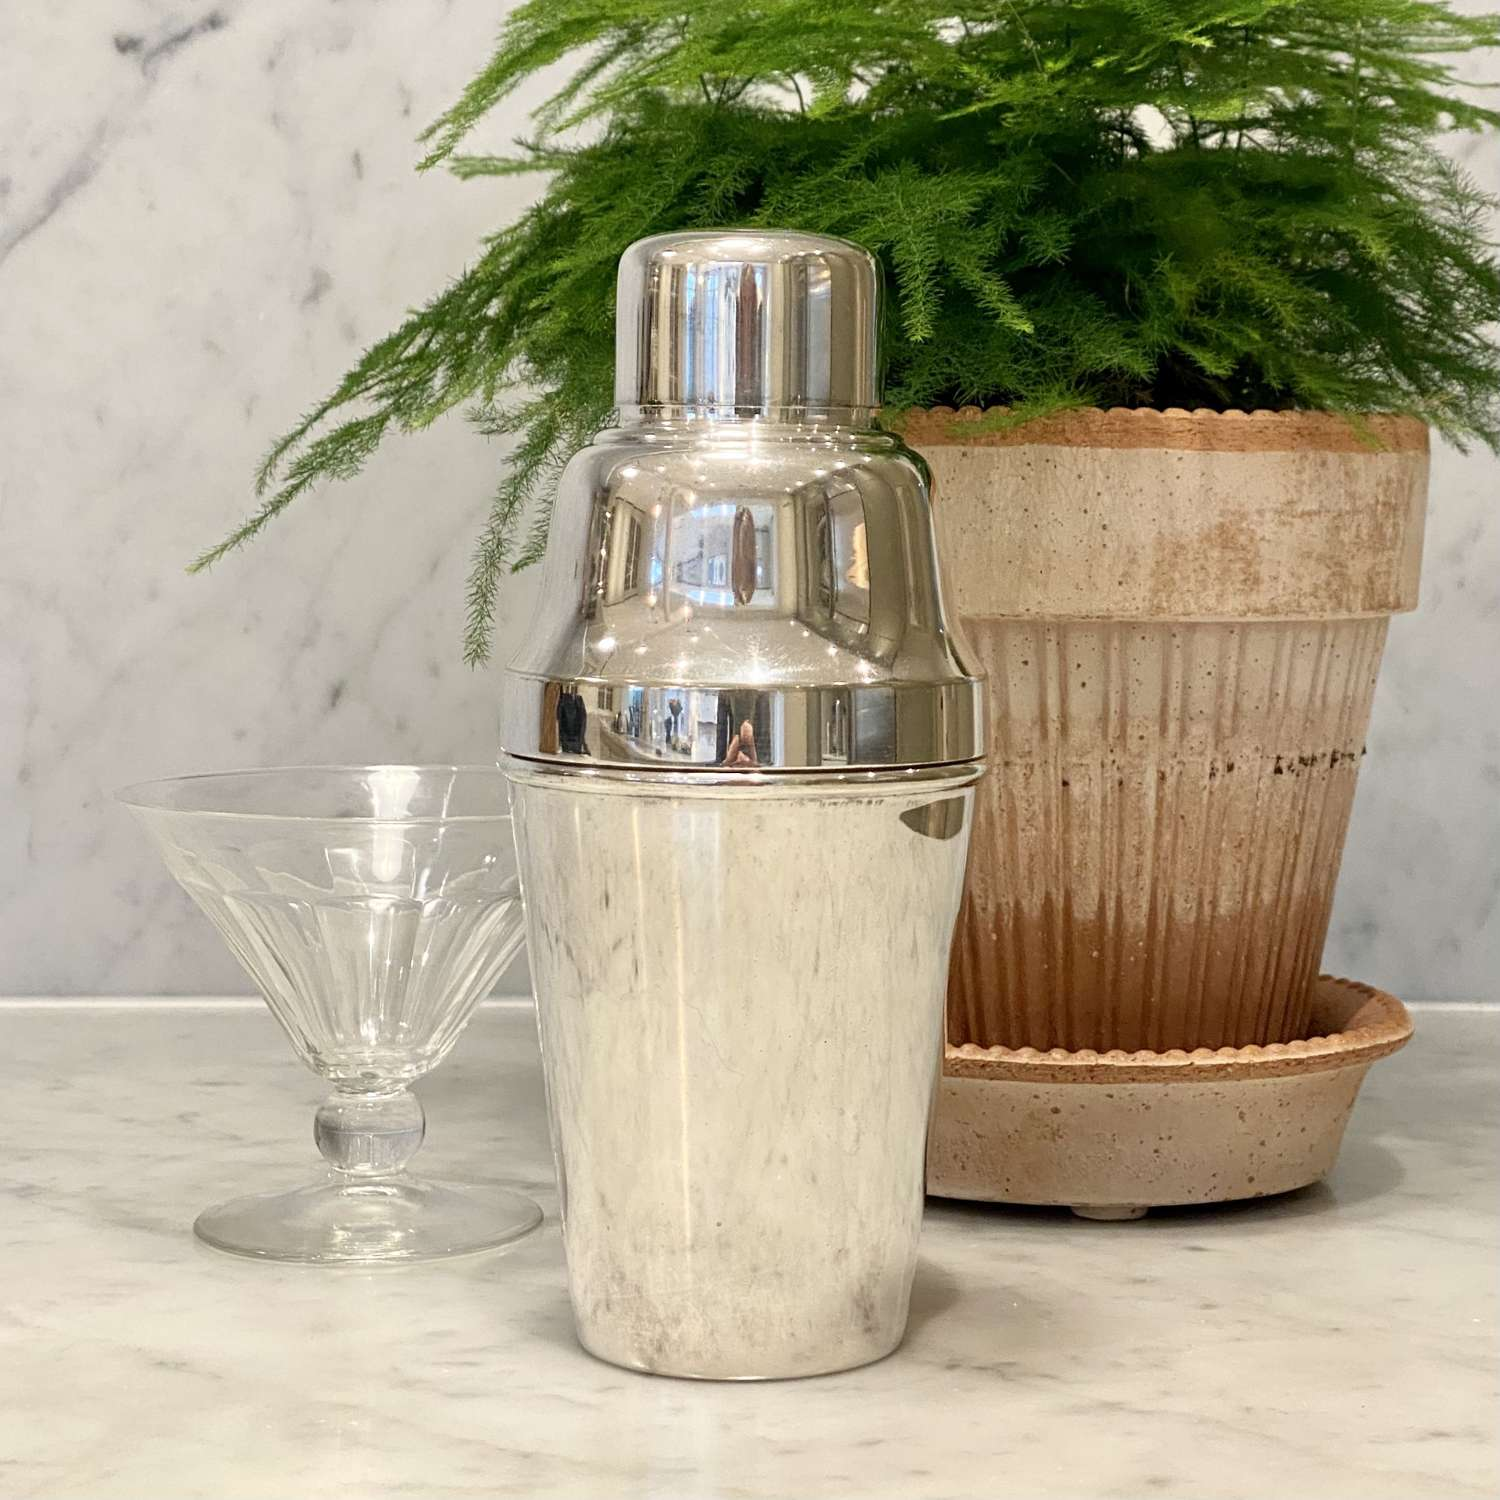 Quality English Art Deco silver plated cocktail shaker